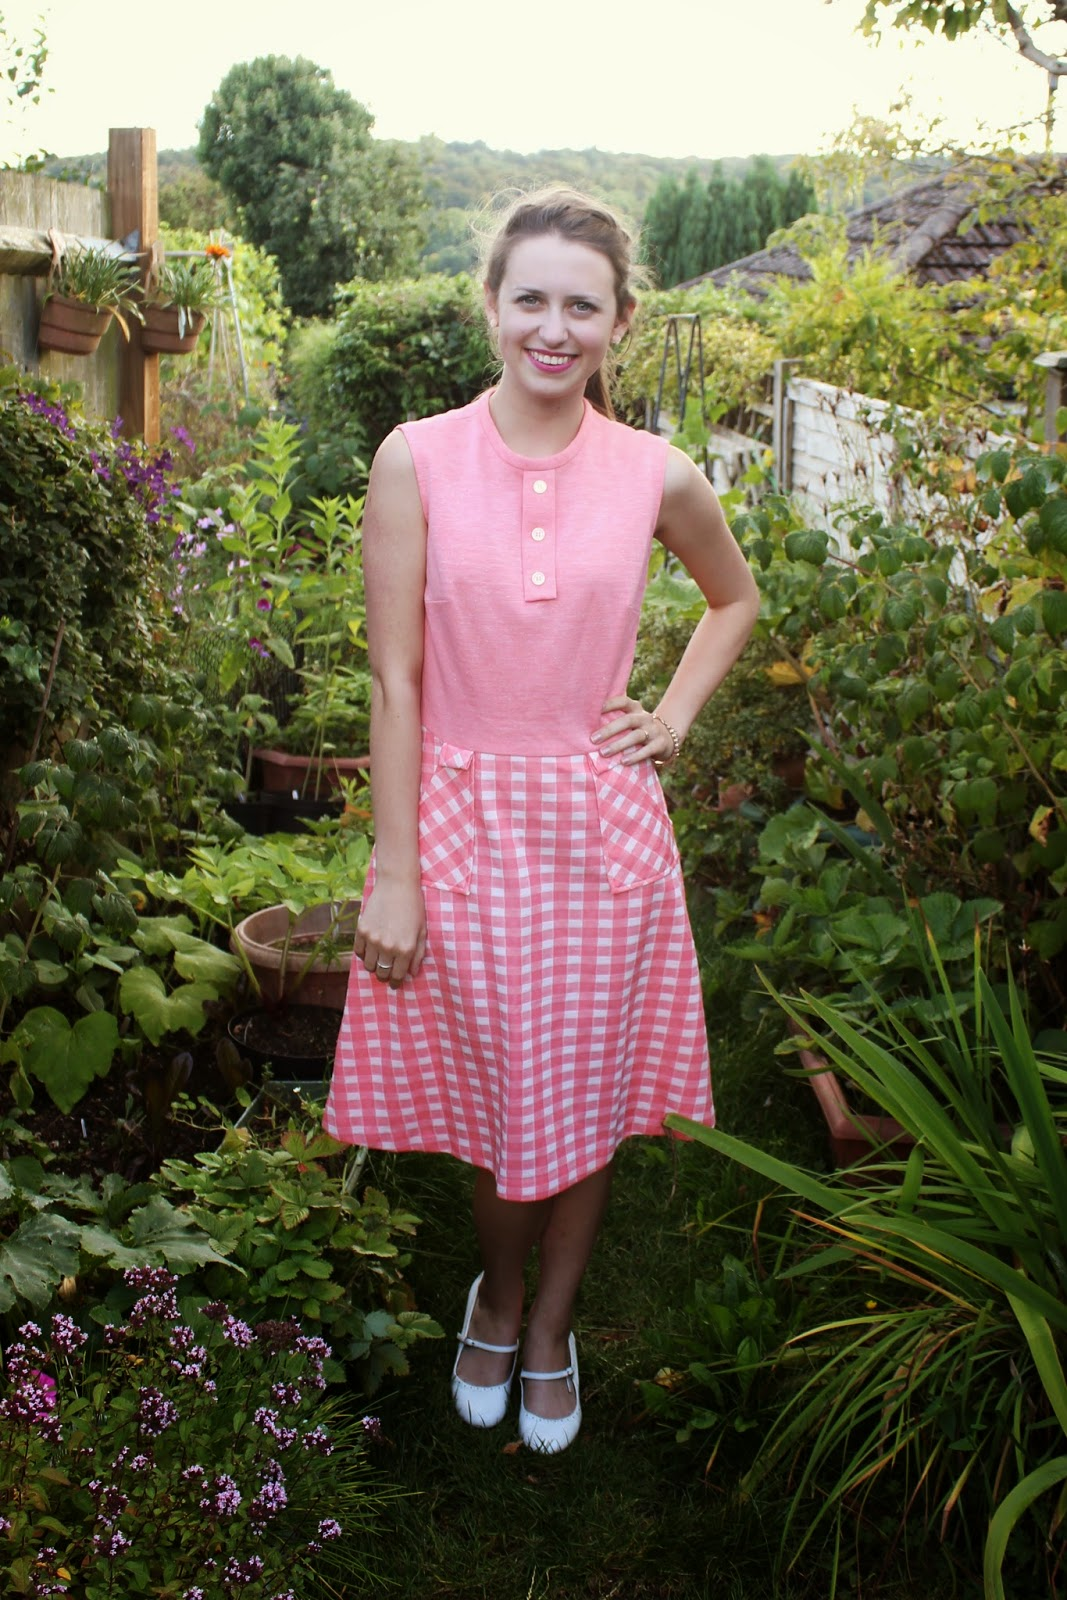 ootd-you're-nobody-but-yourself-garden-dress-pink-check-pattern-print-outfit-fashion-bloggers-clothes-style-inspiration-heels-peace-happy-ring-bracelet-pretty